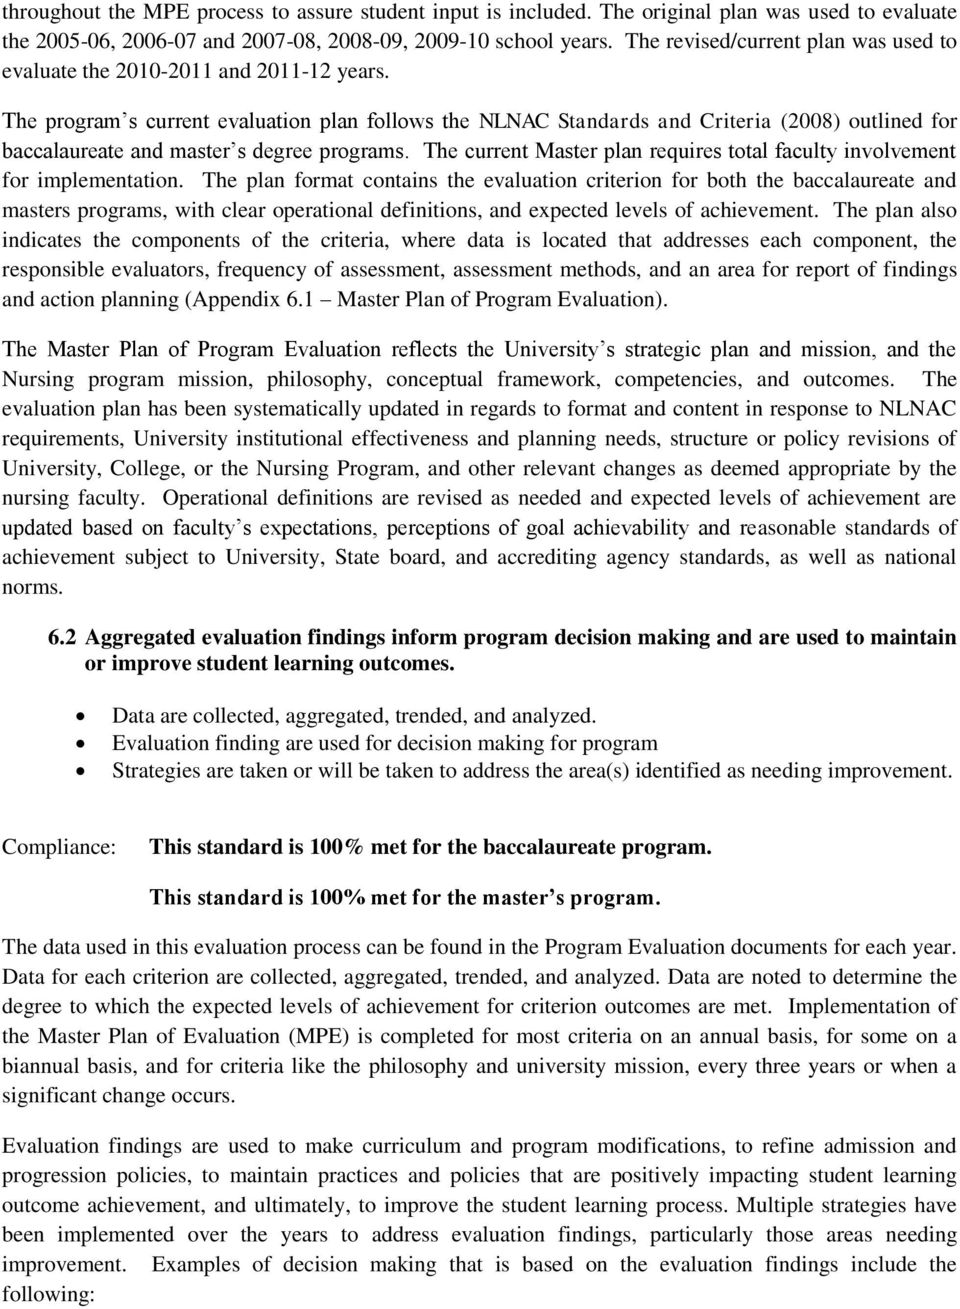 The program s current evaluation plan follows the NLNAC Standards and Criteria (2008) outlined for baccalaureate and master s degree programs.